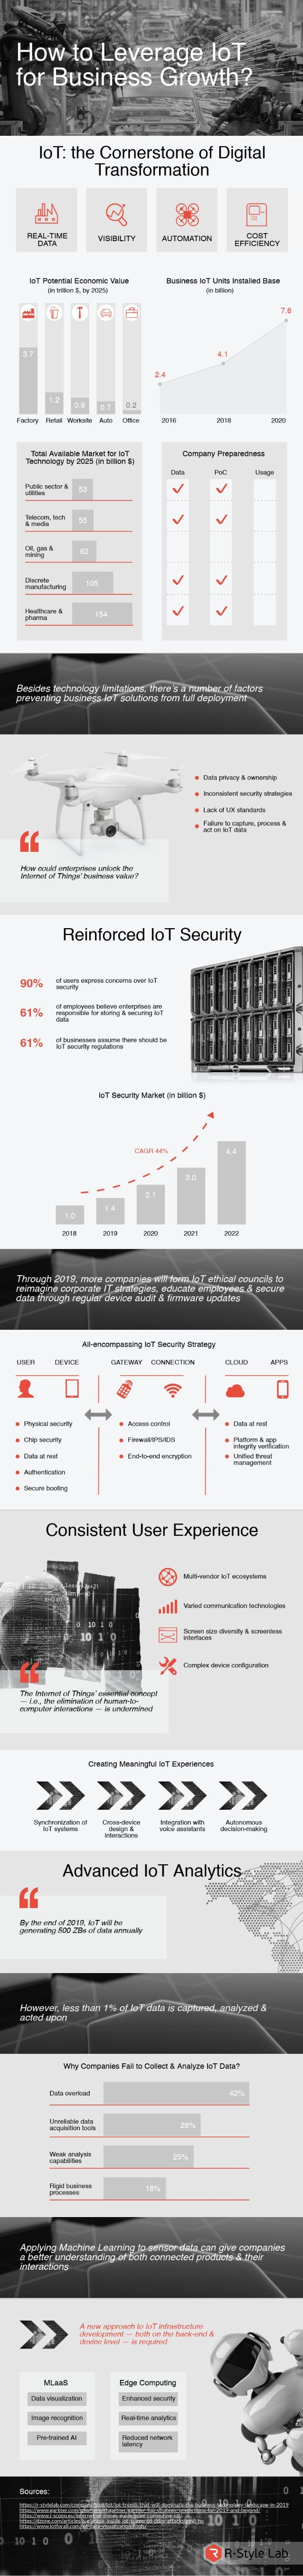 How to Leverage IoT for Business Growth: Infographic